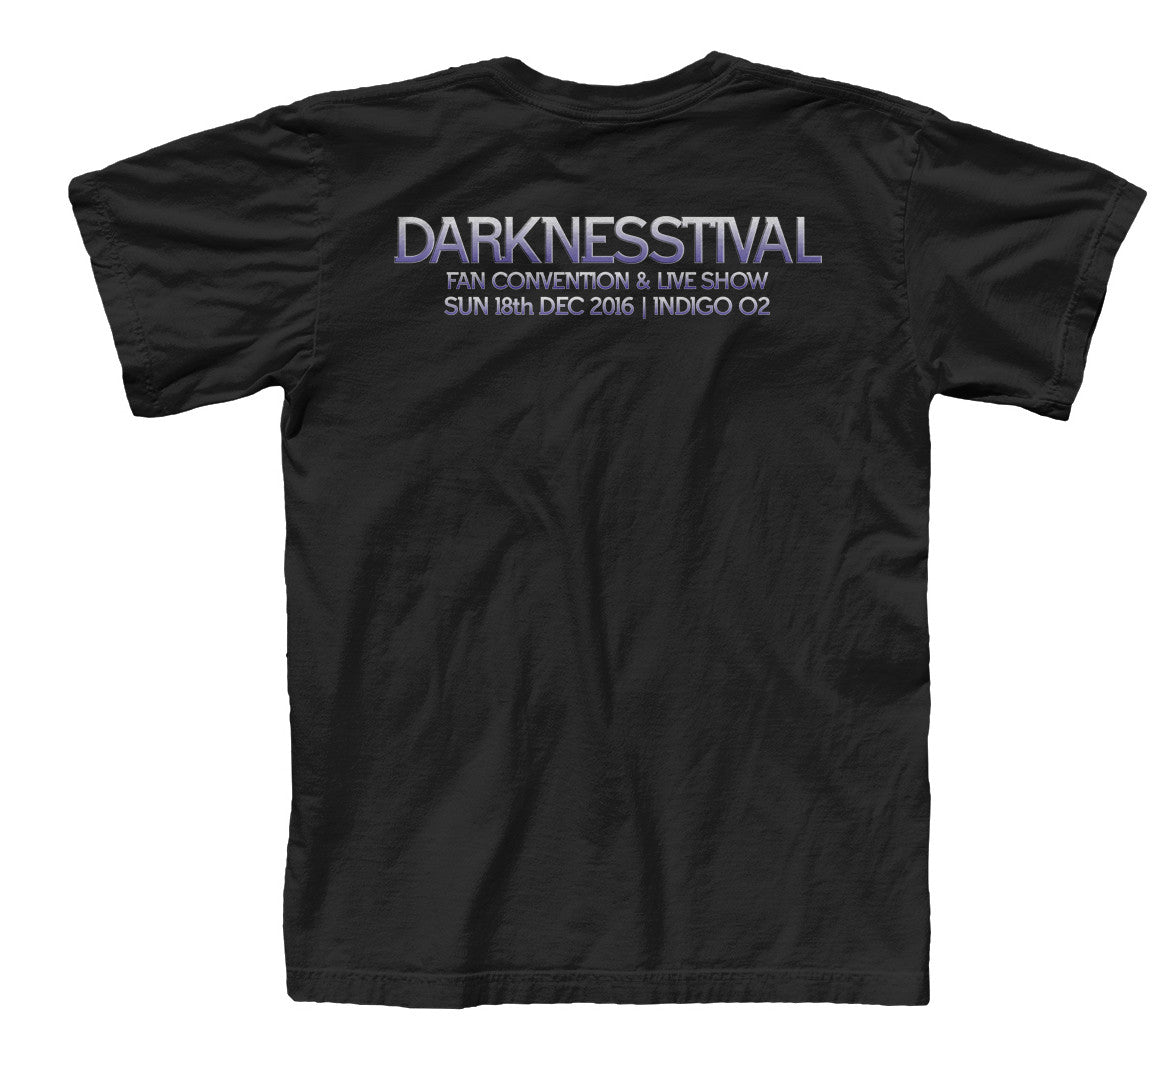 Darknesstival T Shirt (ladies)